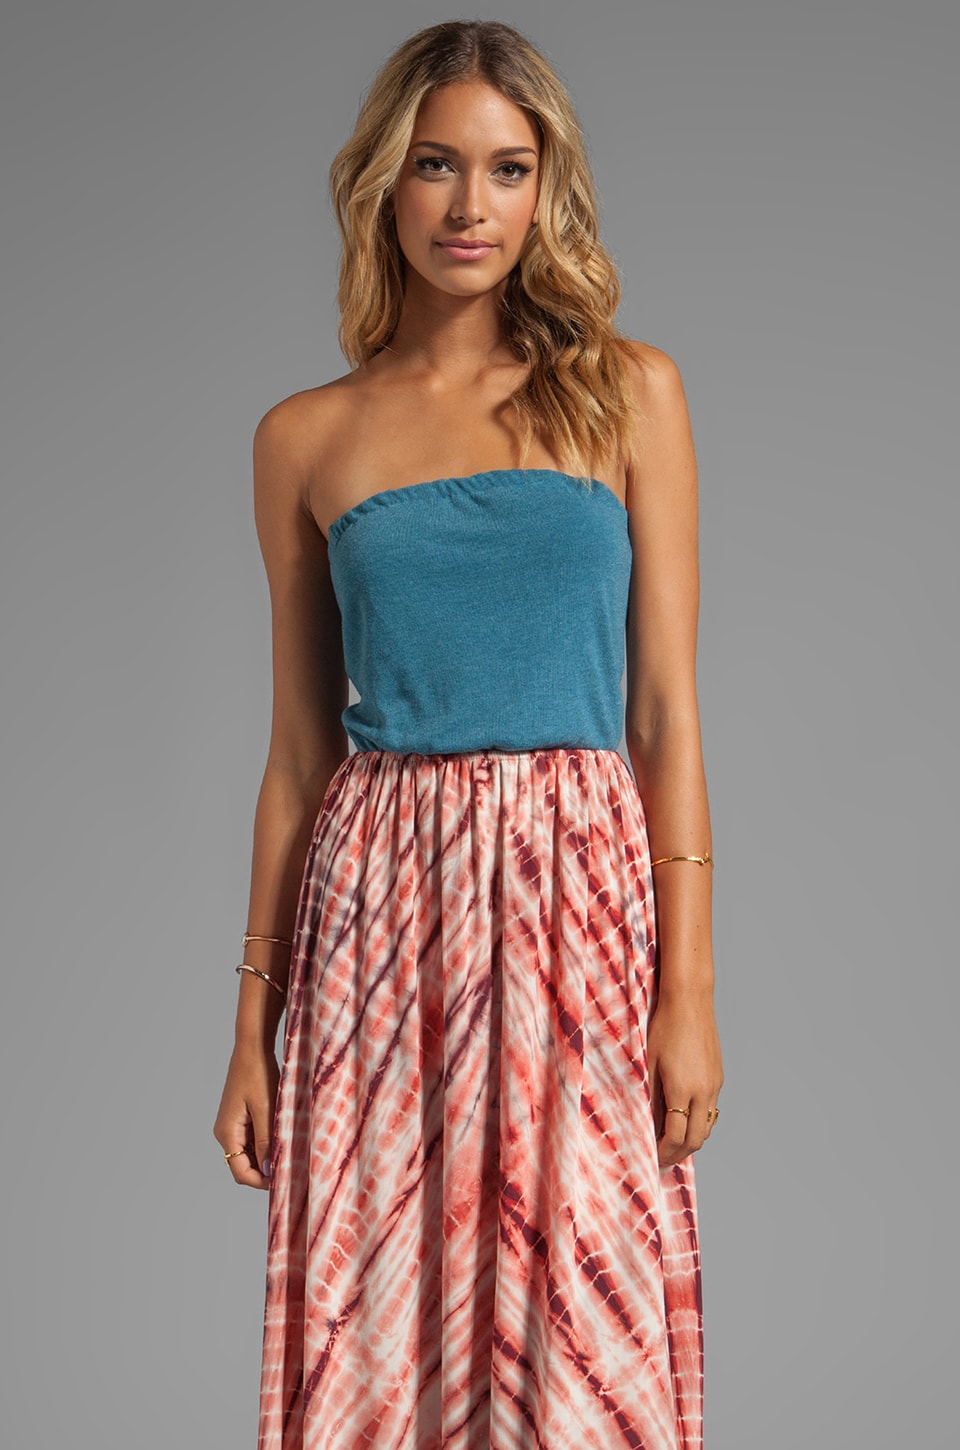 WOODLEIGH Alexa Strapless Maxi in Ocean/Blood Orange Tie Dye